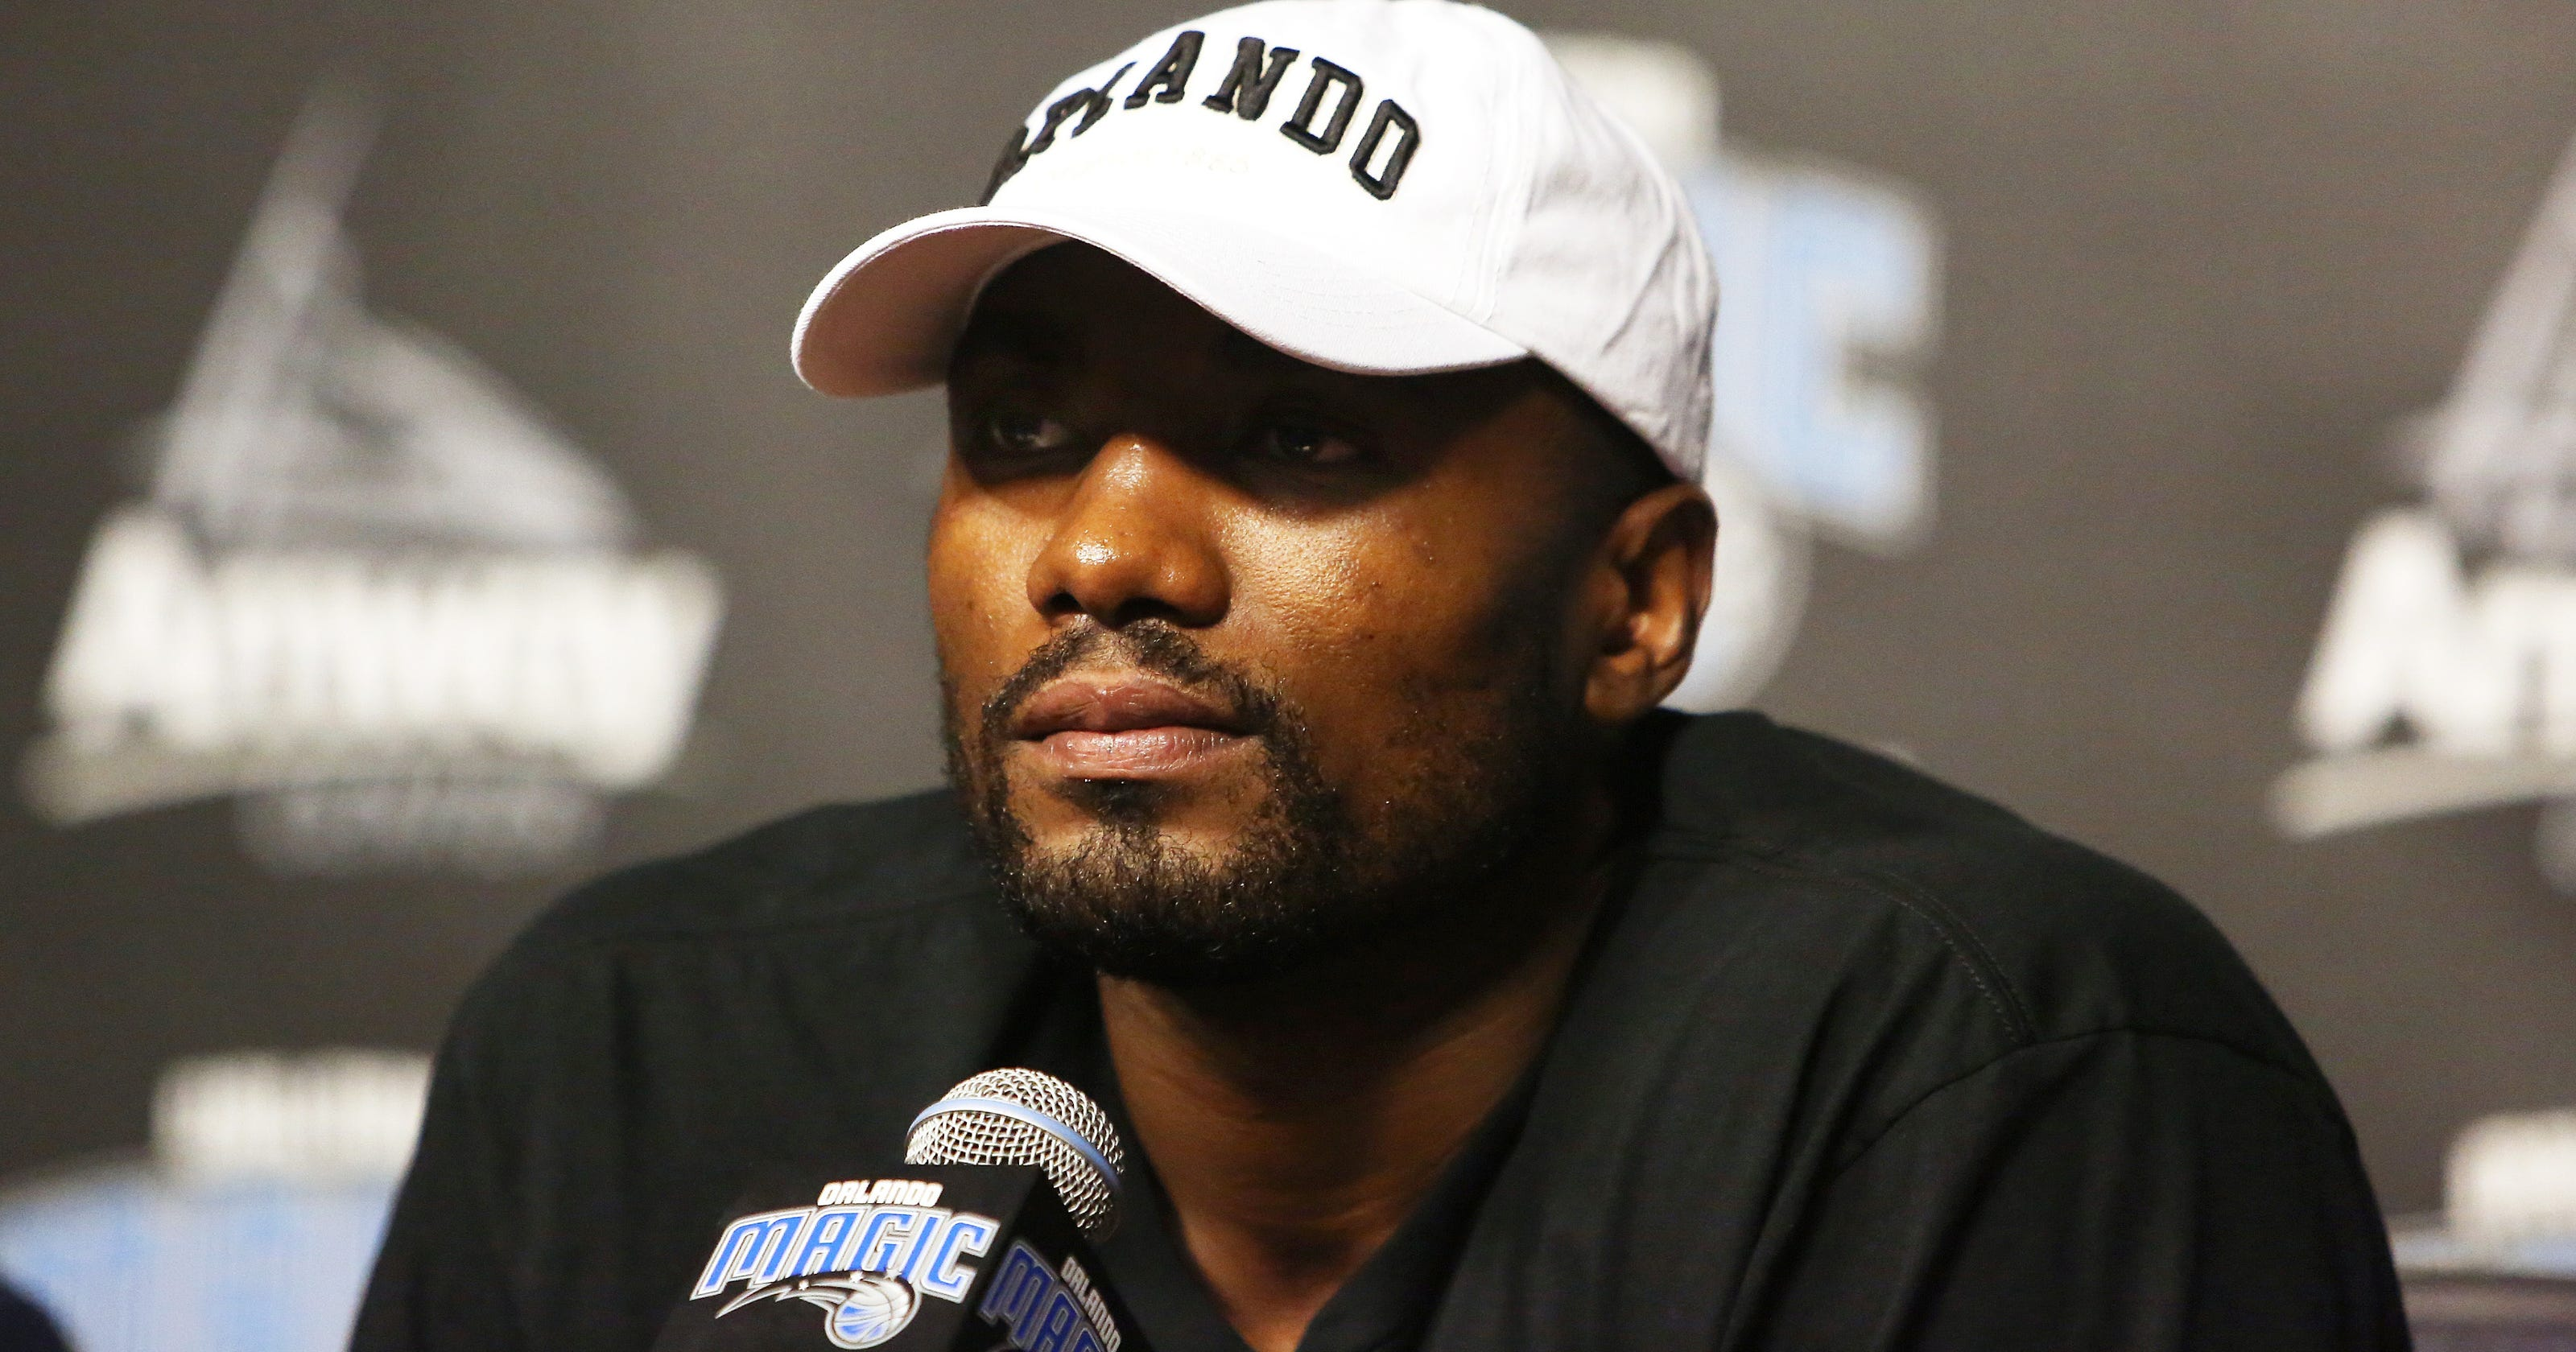 959aef2f0 Ibaka   Feels good  to be in Orlando after surprising trade